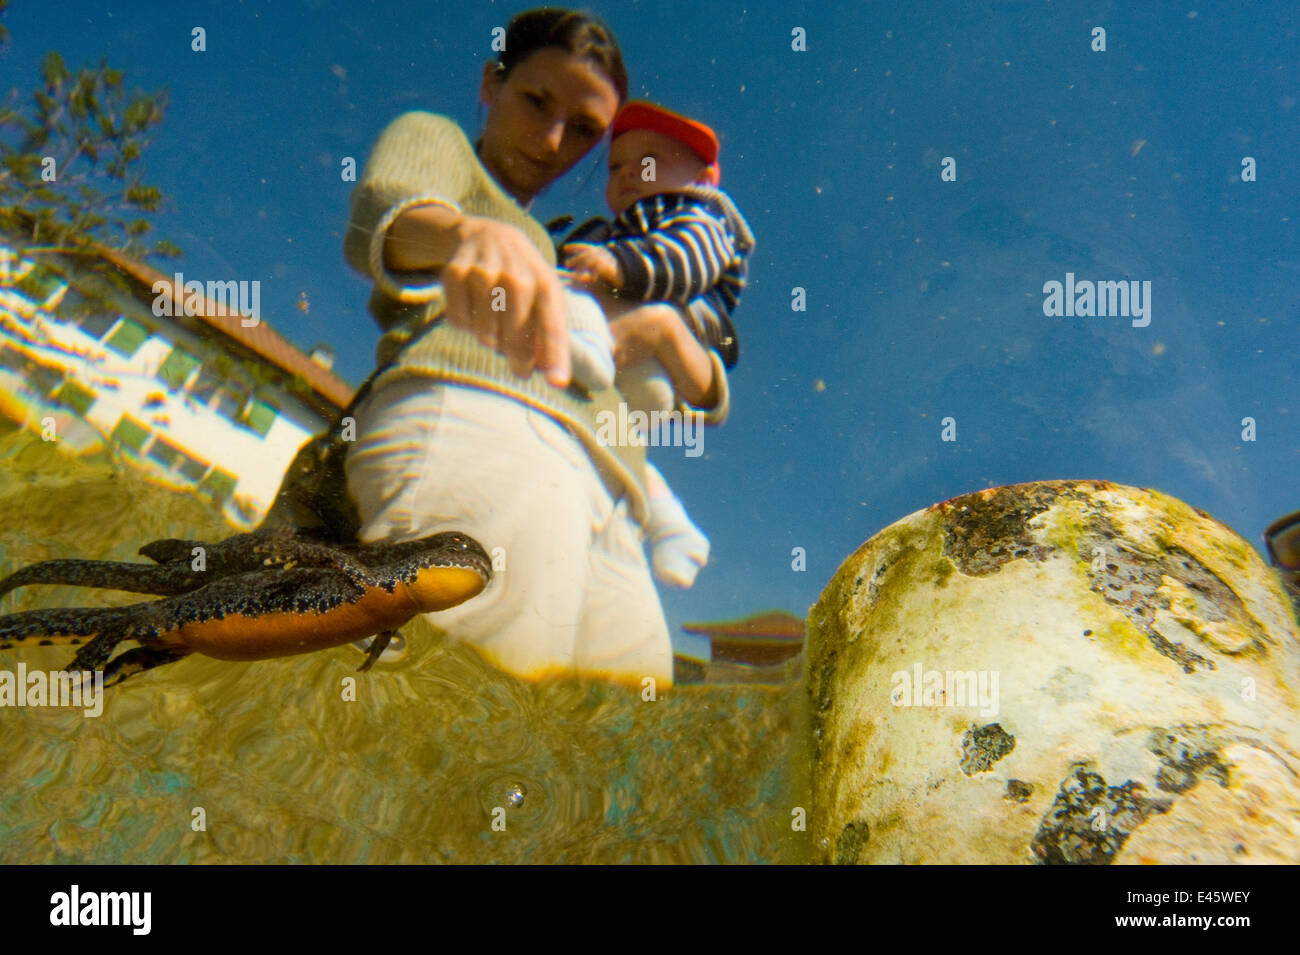 Alpine newt (Triturus alpestris) swimming in garden pond, viewed from below, with woman and child watching. Switzerland, - Stock Image